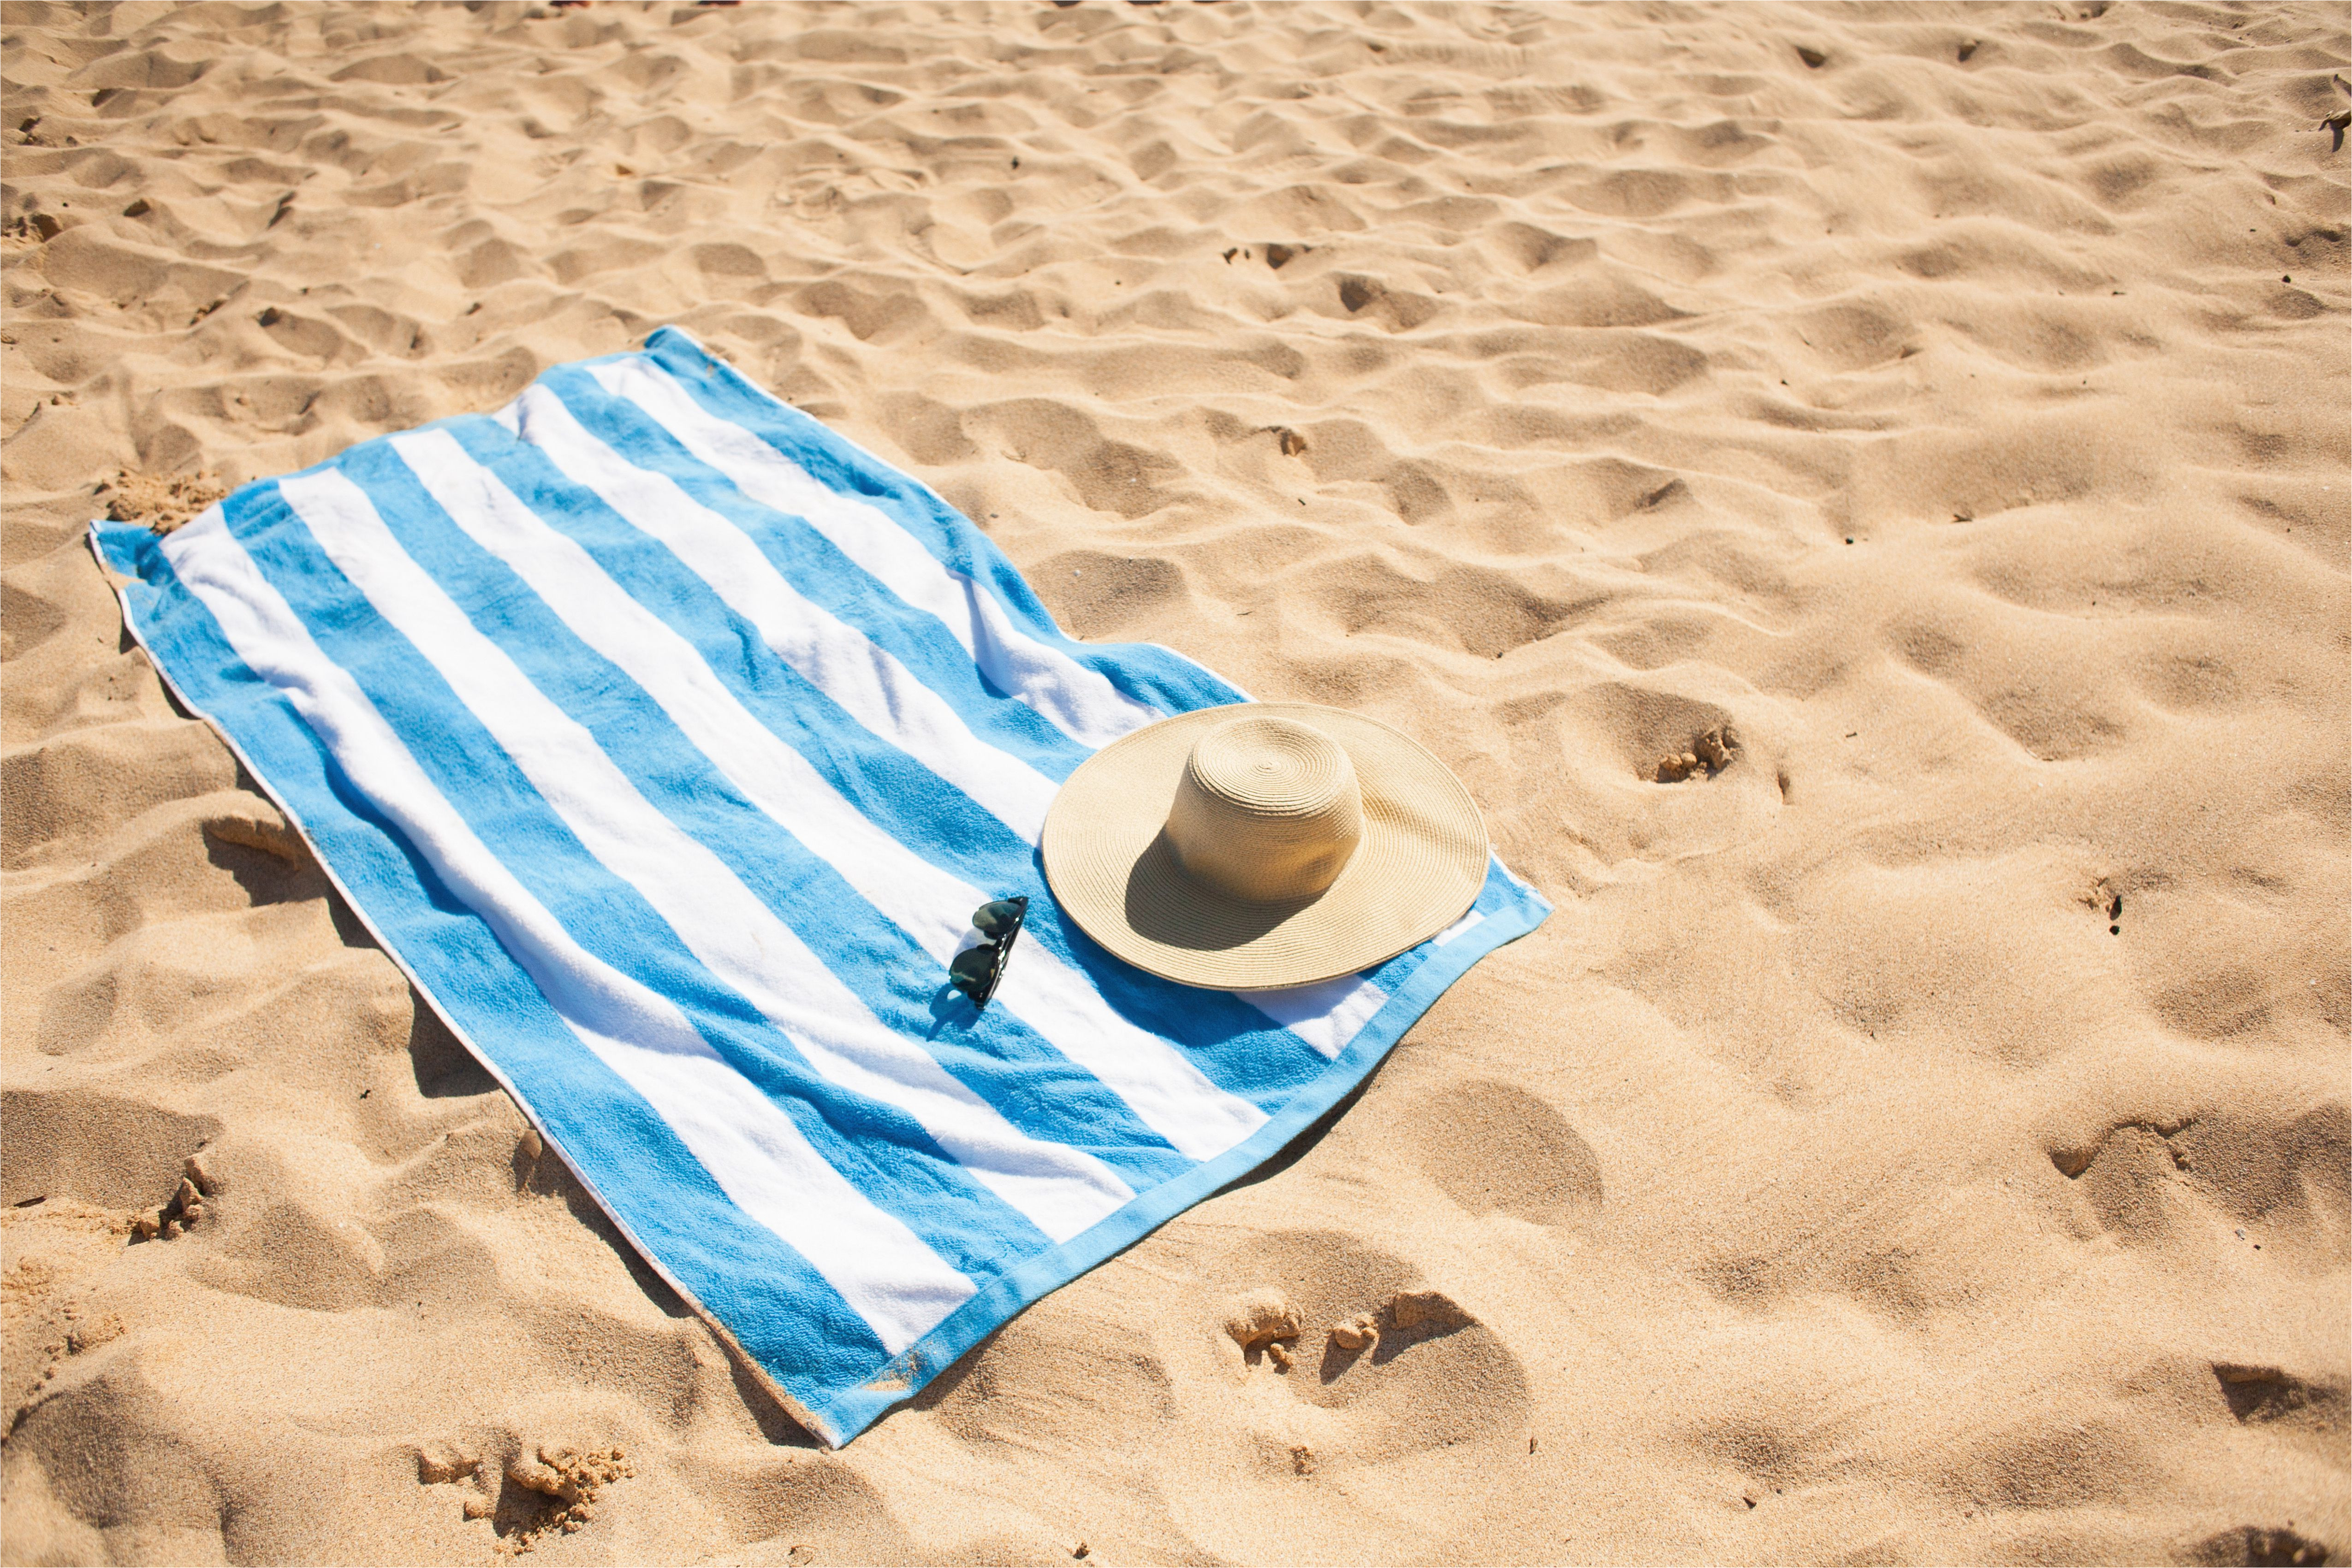 striped beach towel on sand with hat and glasses 463236755 5a1f20d5b39d030039f78644 jpg